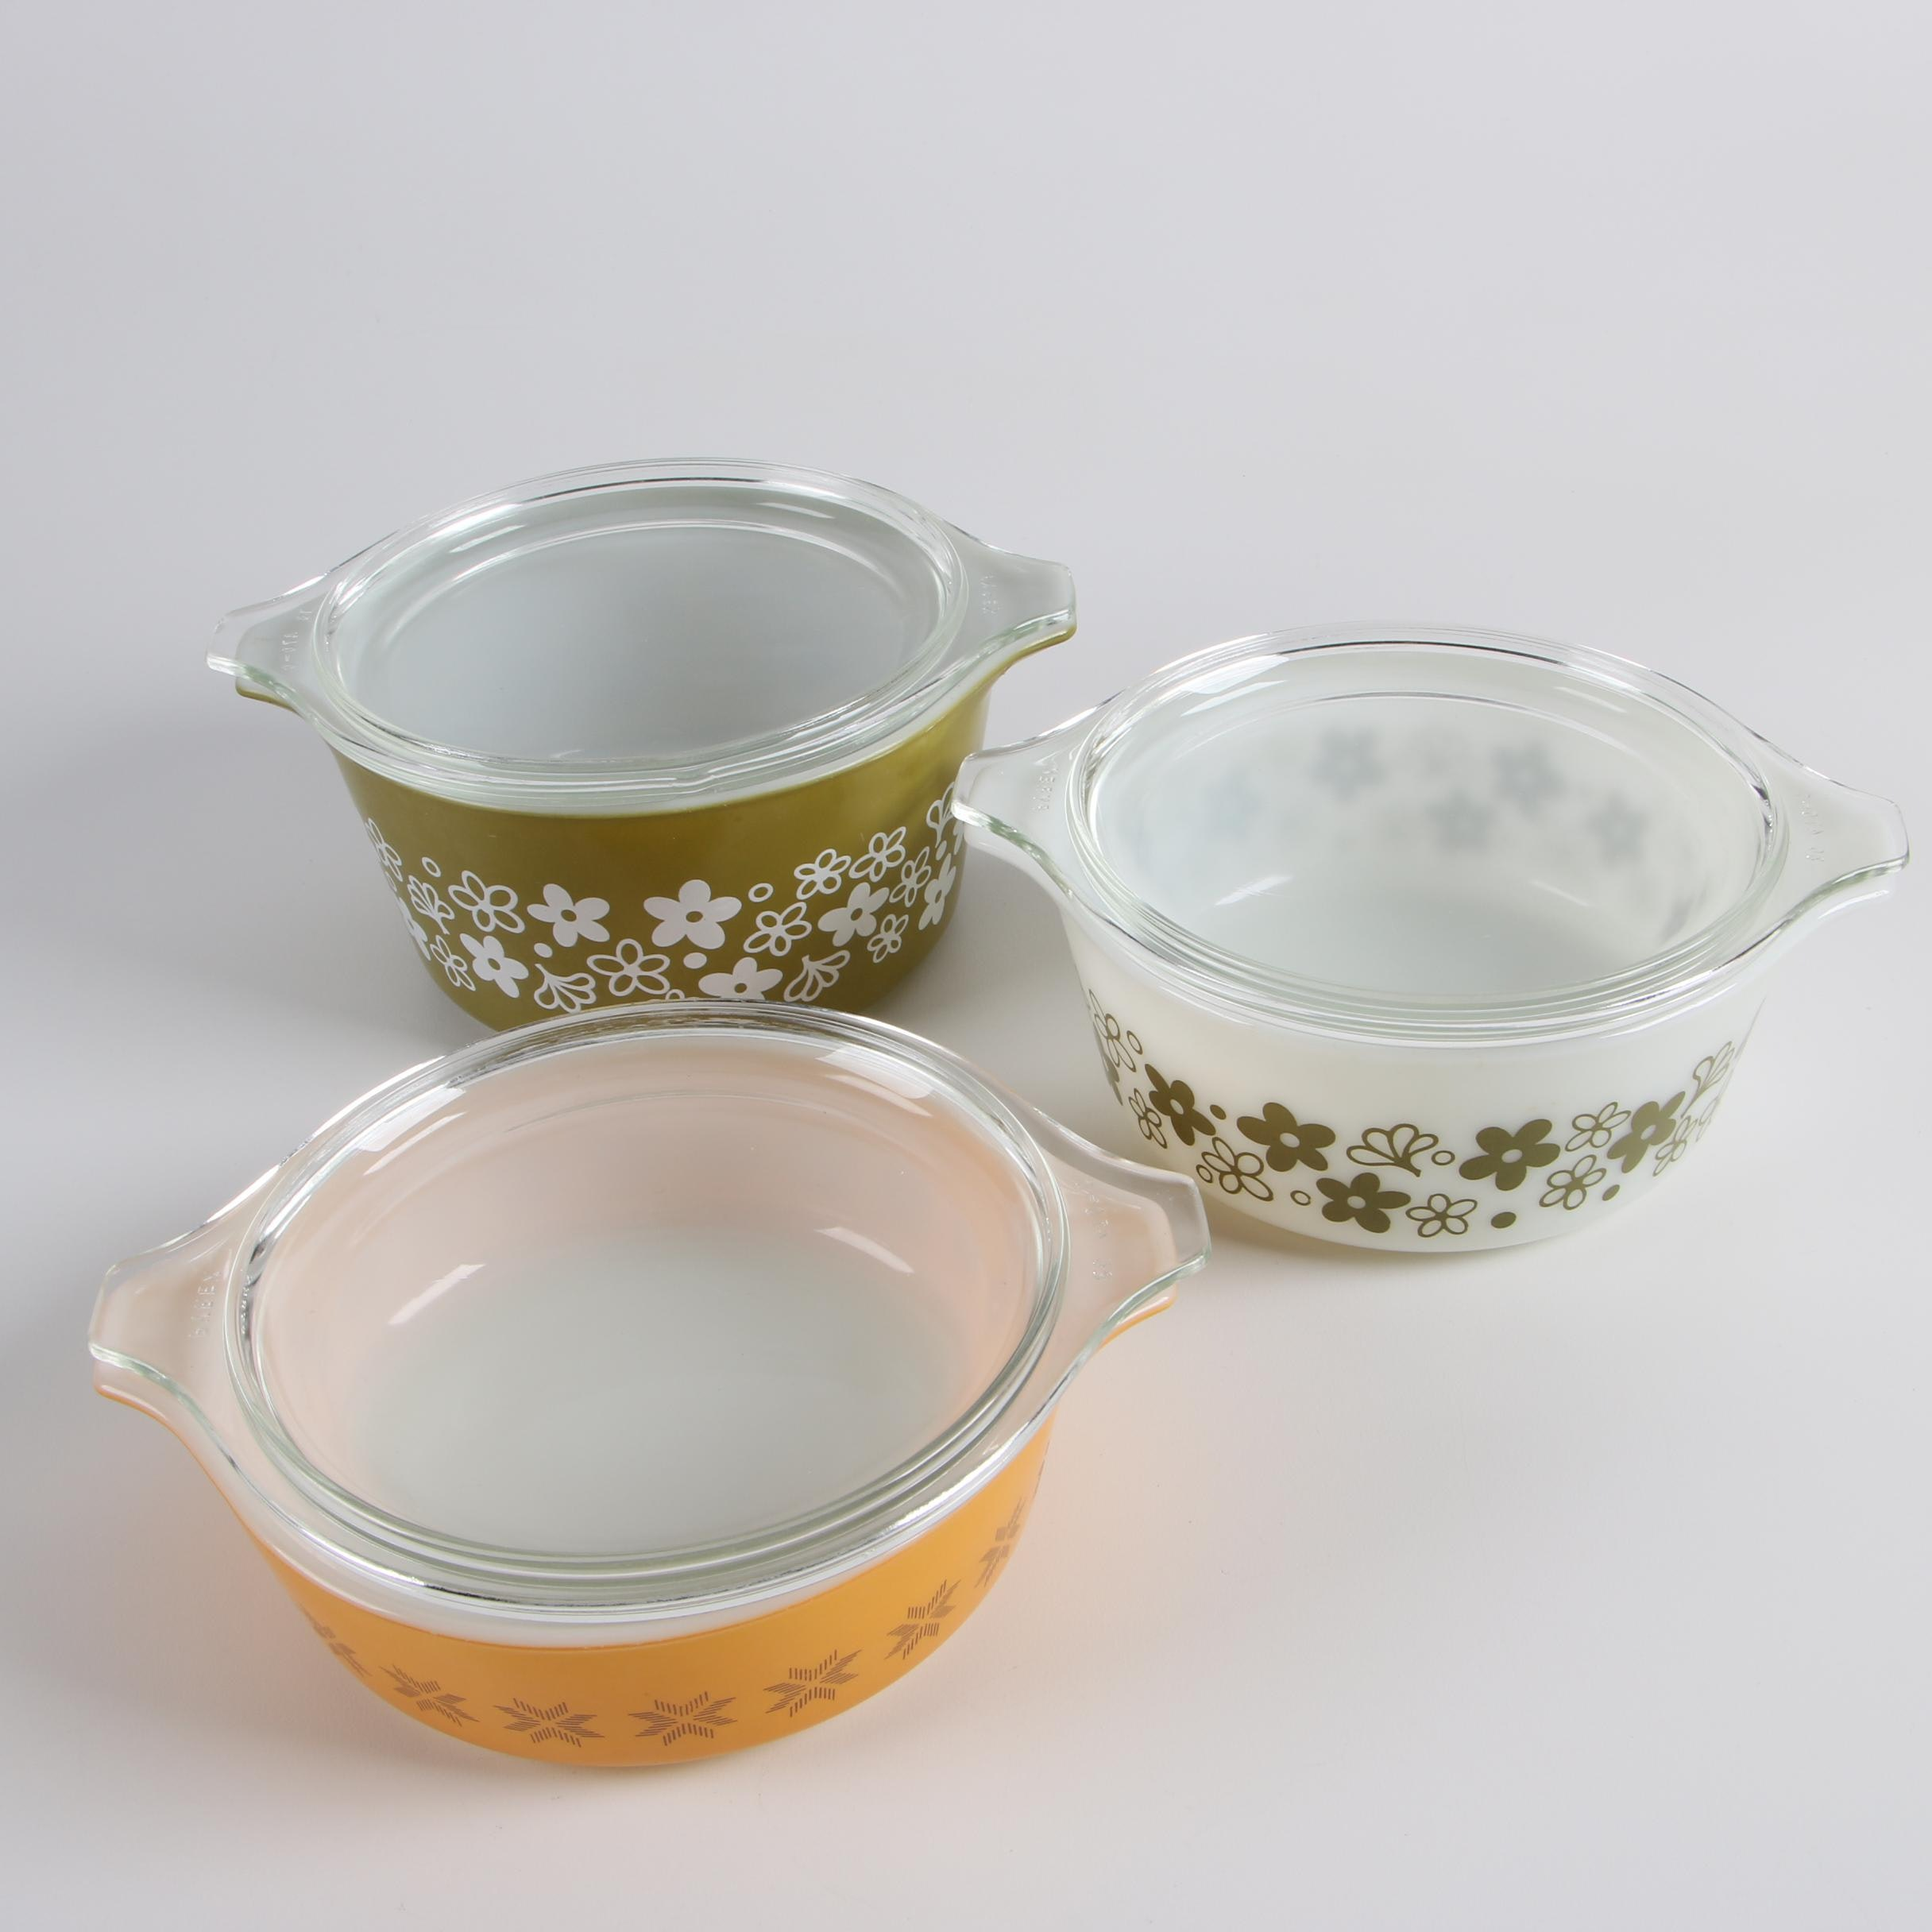 """Pyrex """"Spring Blossom"""" and """"Town and Country"""" Lidded Casseroles , c. 1963-79"""